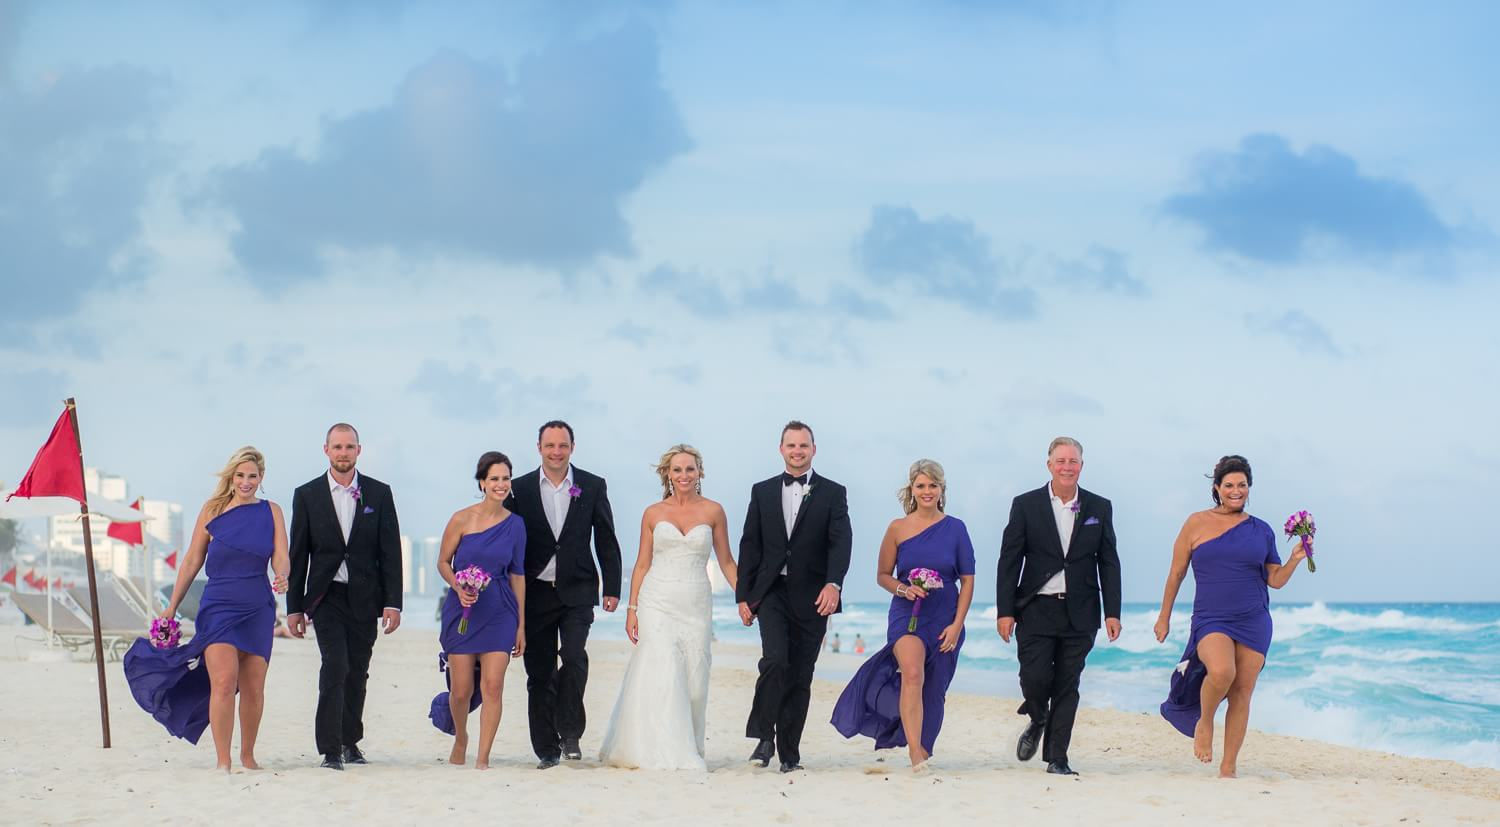 Bridal party walking down beach at cancun wedding